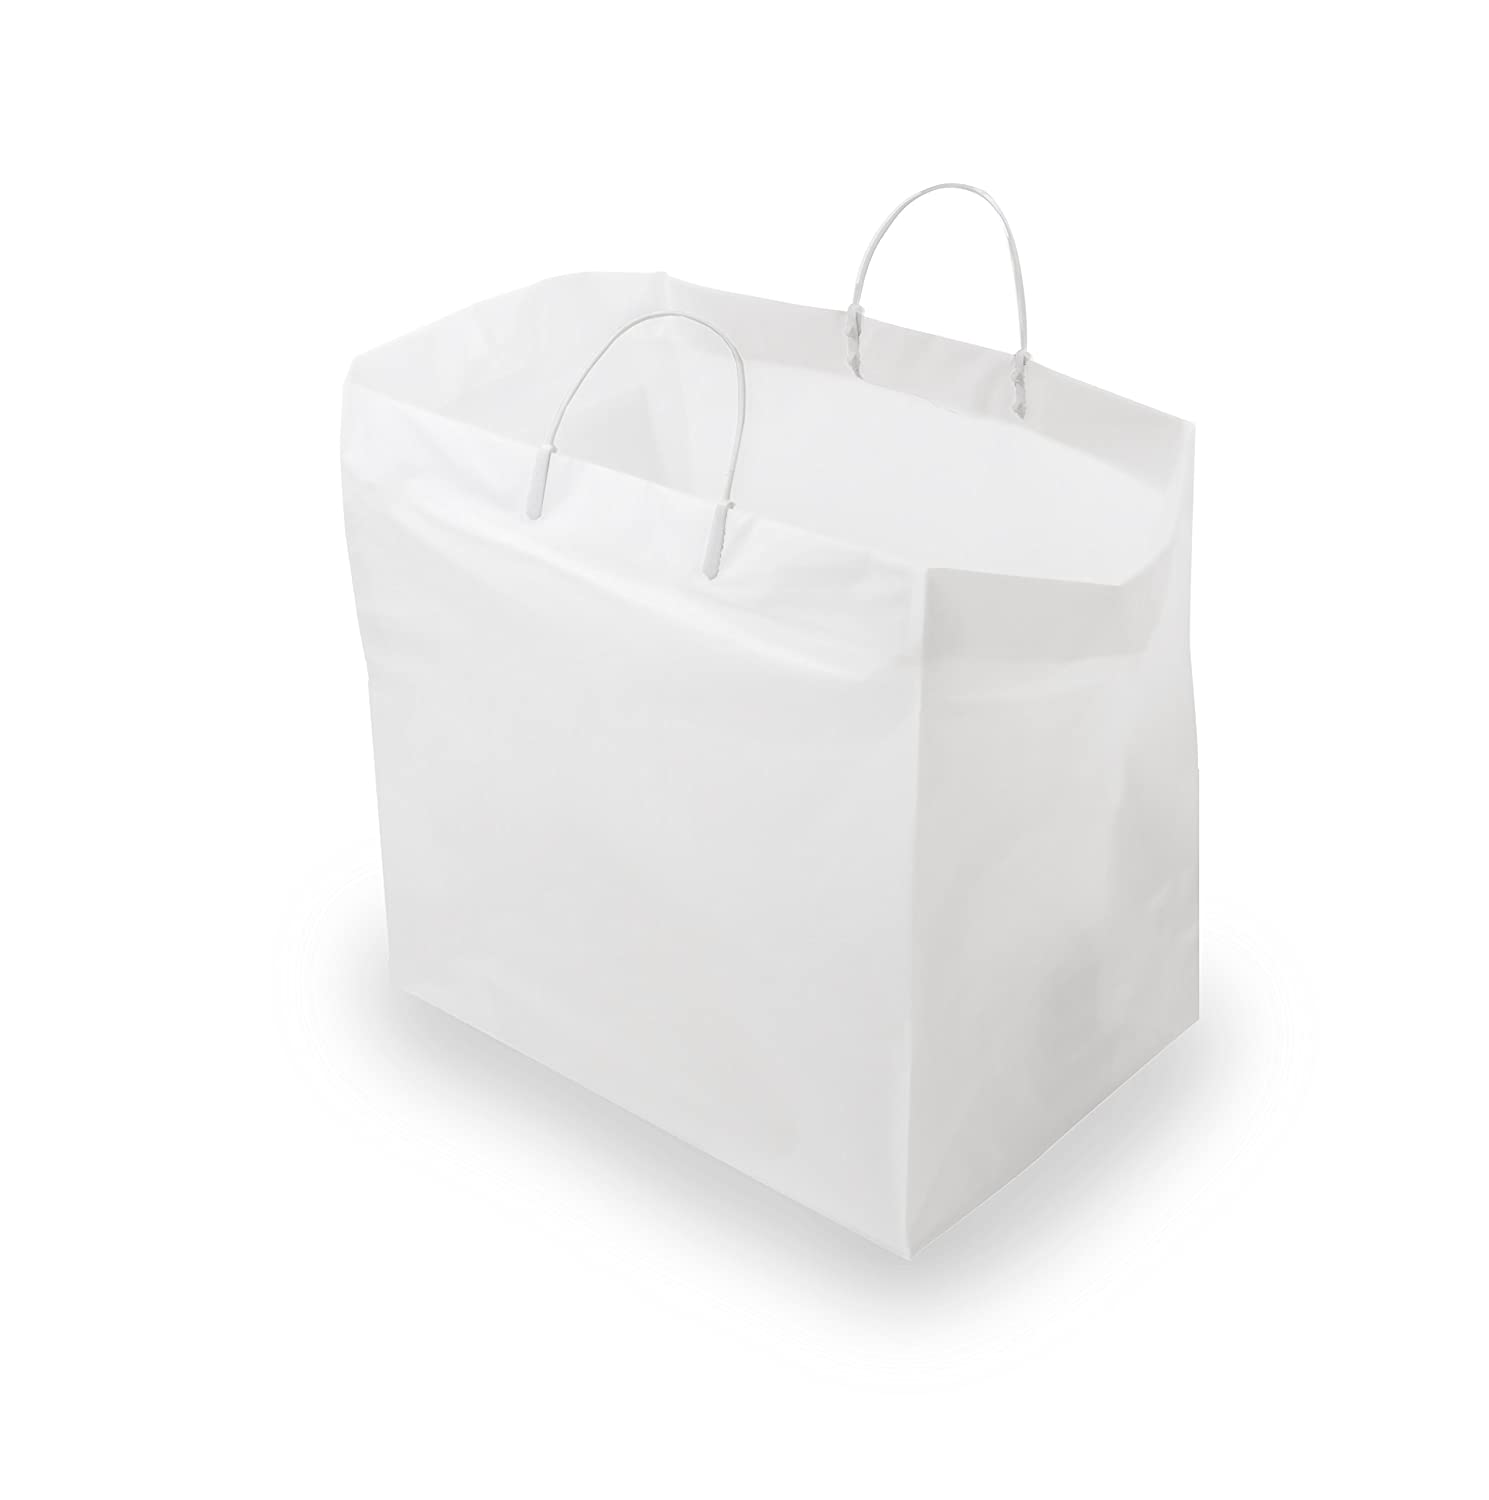 Image of 14x10x14.75 200 Pcs. Thick White Plastic Shopping Bags with Handles & Cardboard Bottom, Merchandise Bags, Food Service Bags, Take Out Bags, Gift Bags Bulk Home and Kitchen